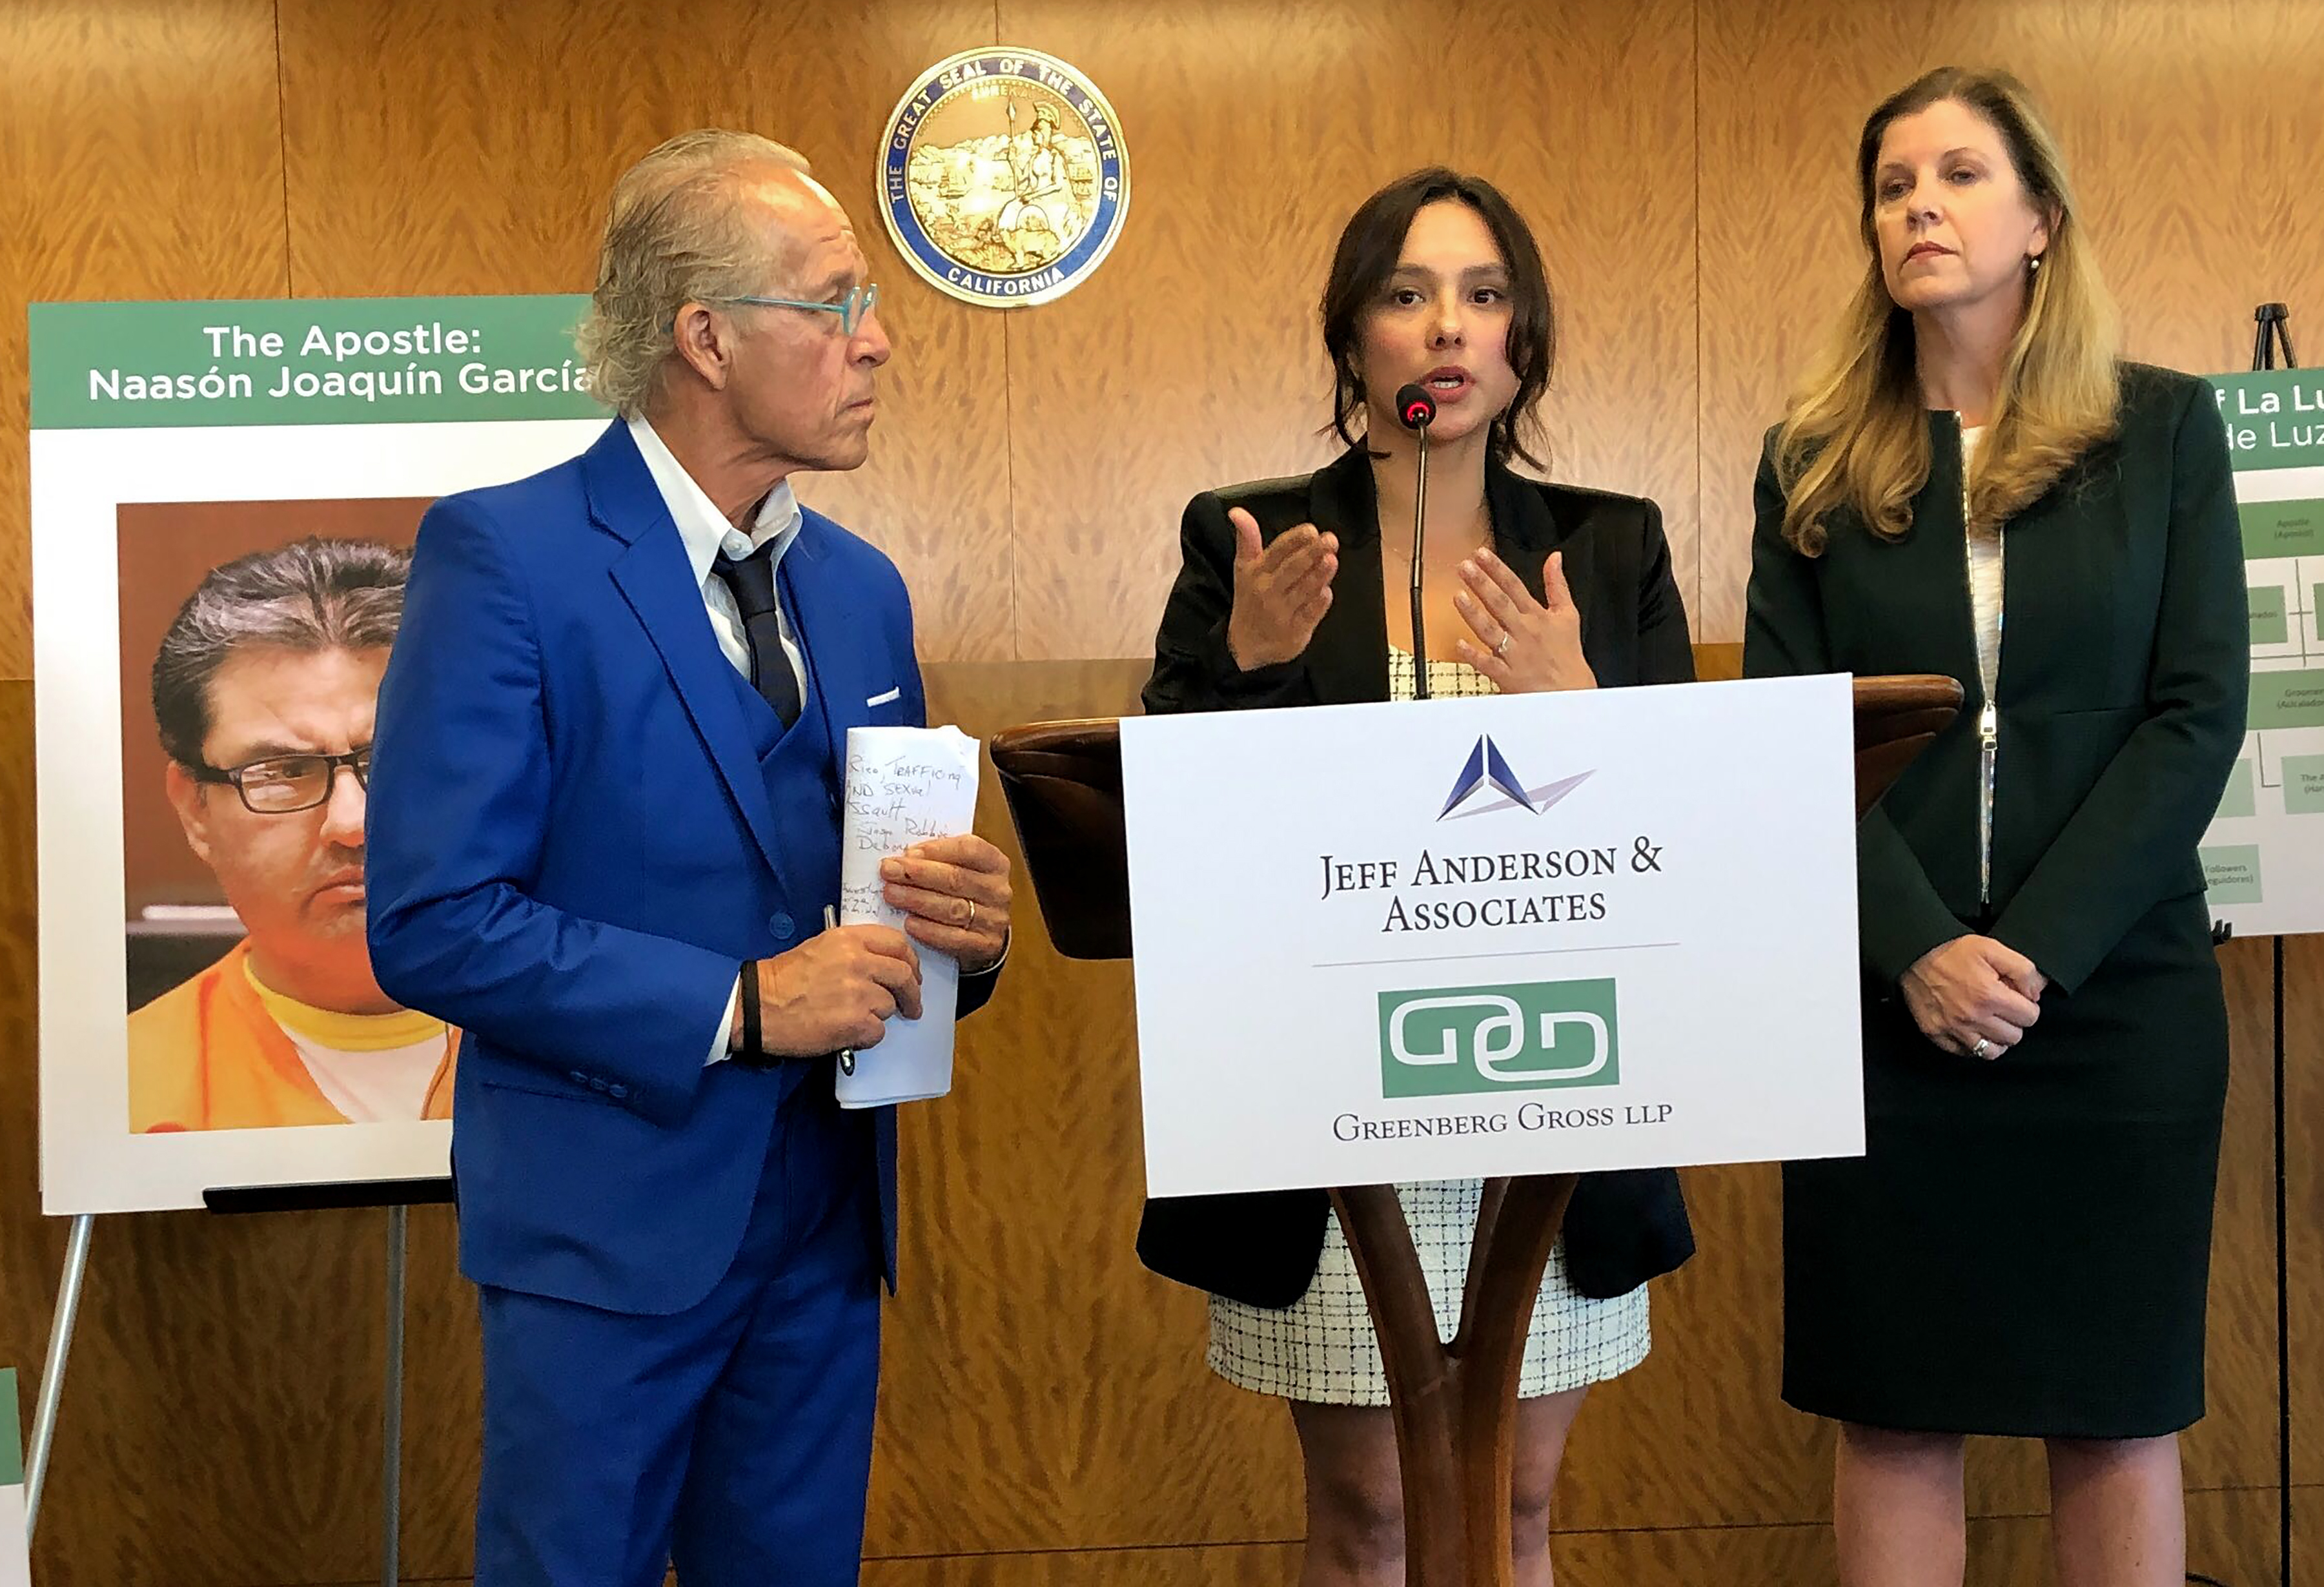 Sochil Martin, center, with lawyers Jeff Anderson, left, and Deborah Mallgrave, speaks at a news conference in Los Angeles on Feb. 13, 2020.